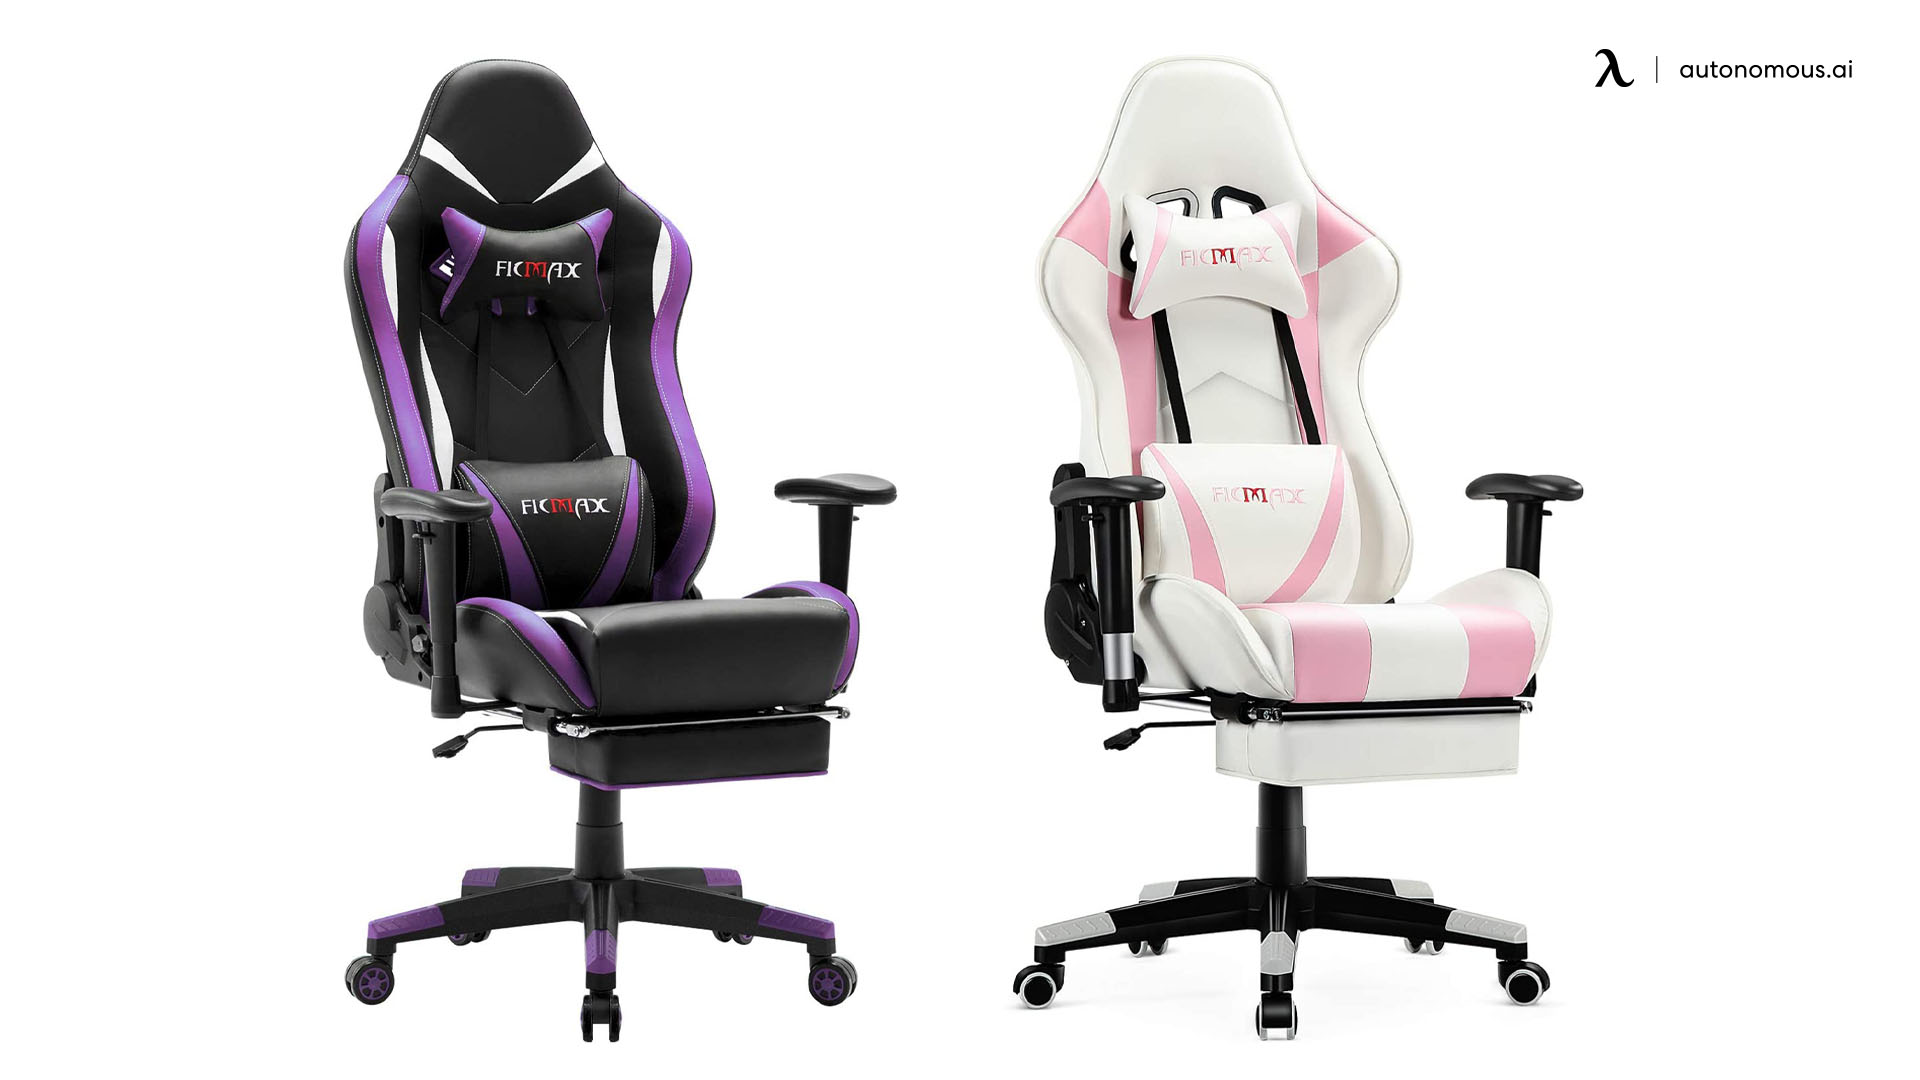 Ficmax's Gaming chair with Massage and footrest